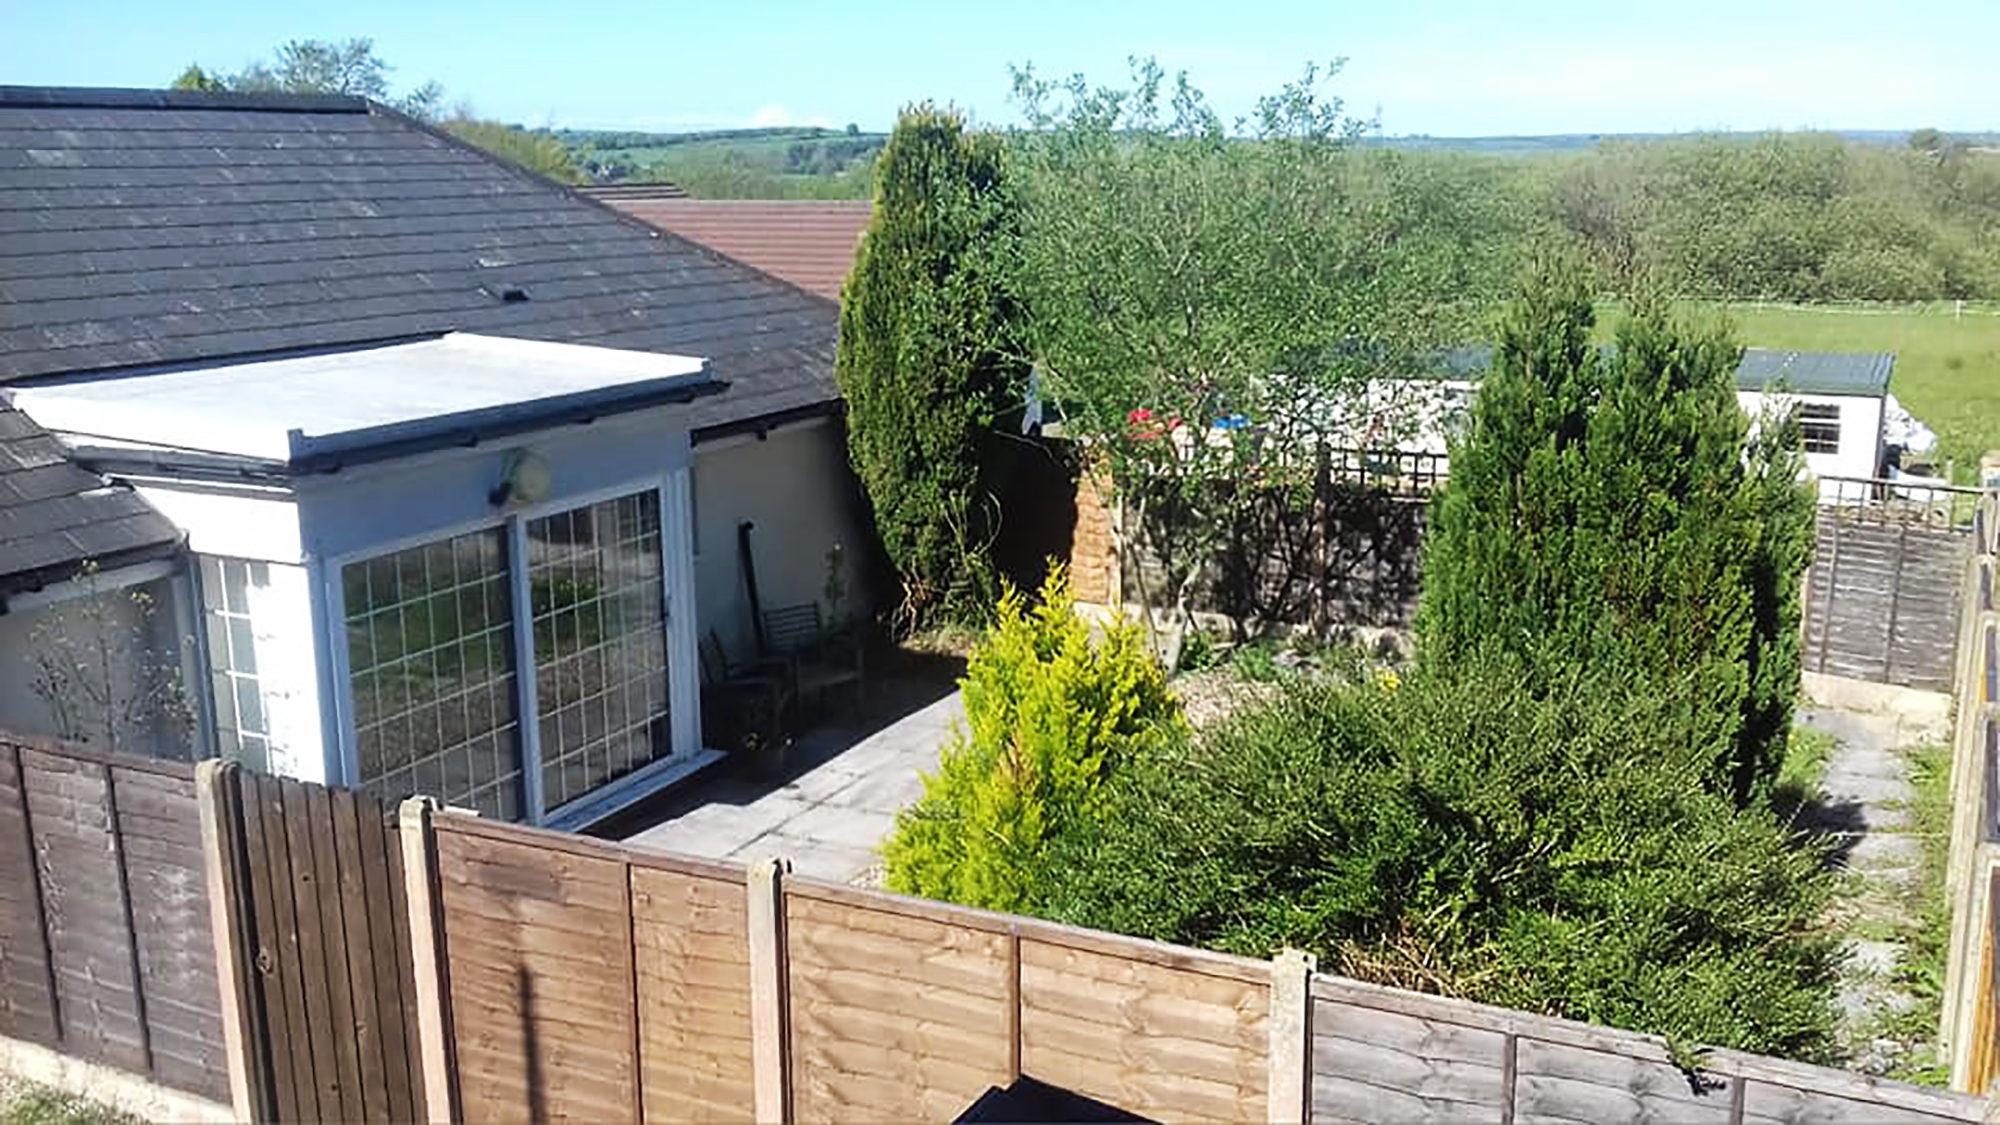 View from outside of fully enclosed garden